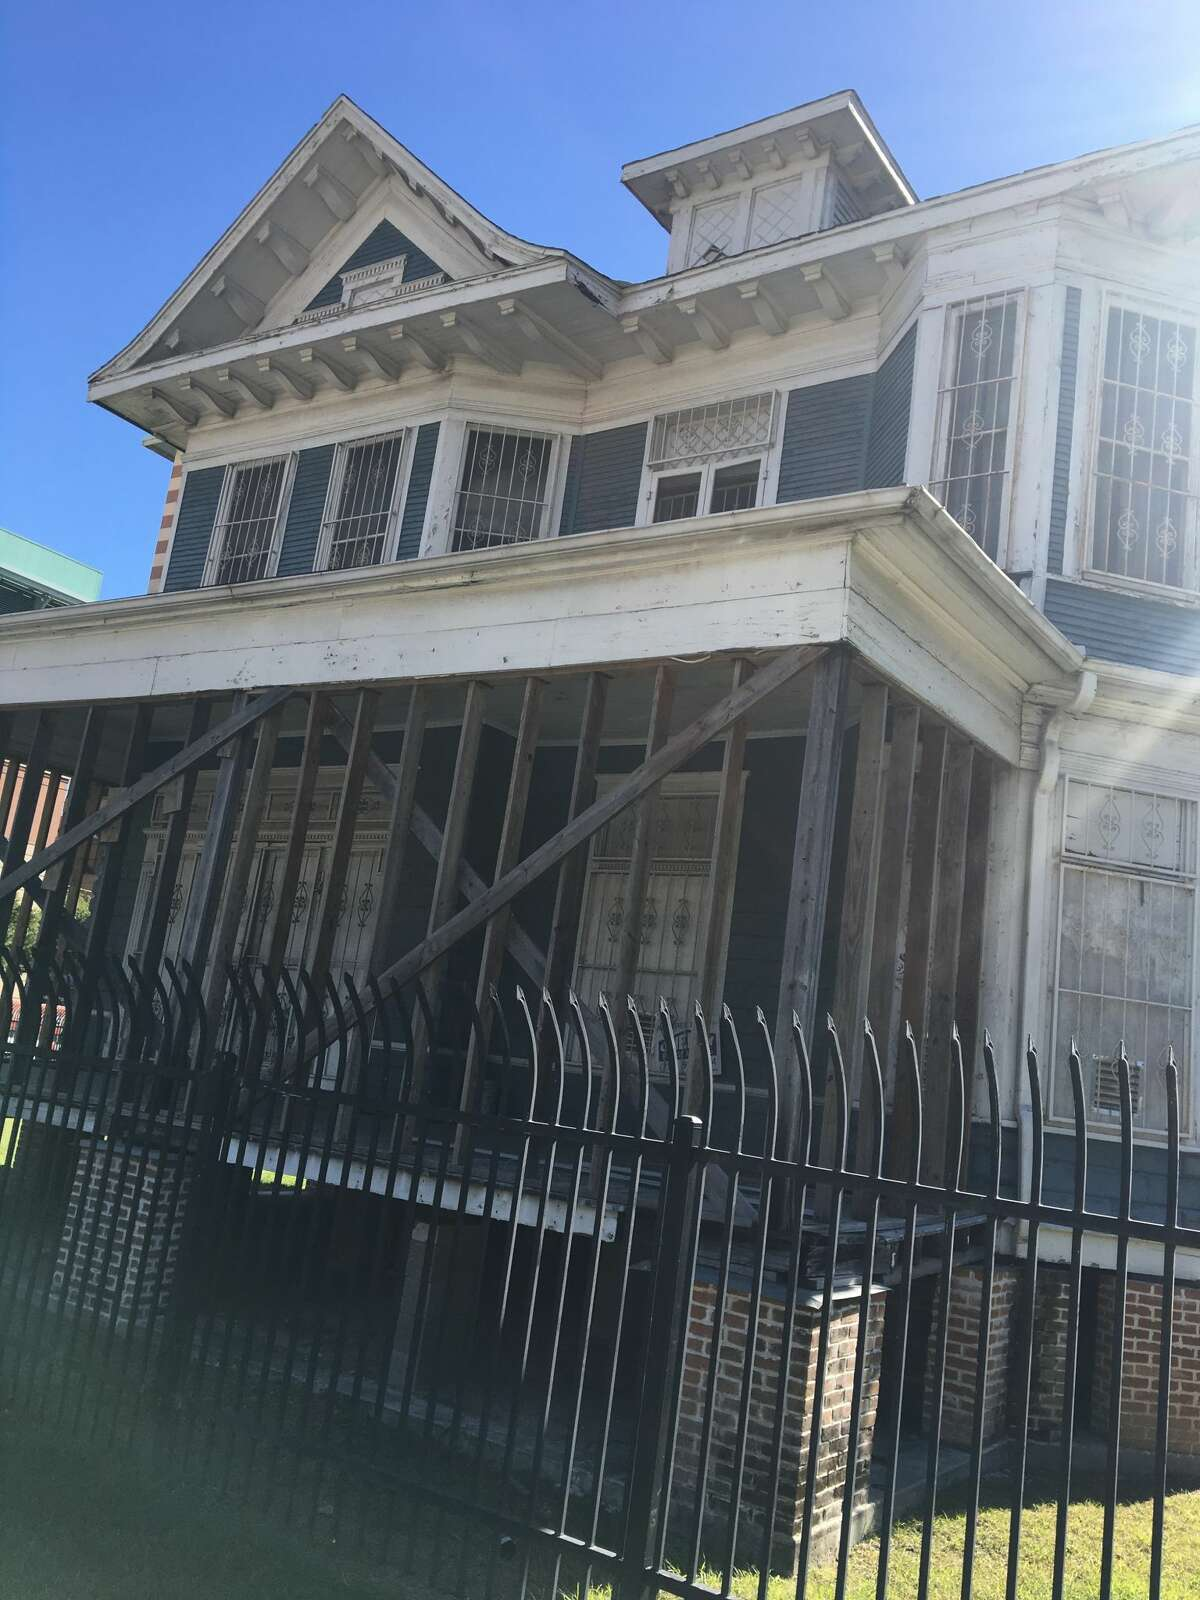 The two-story blue house is a throwback from the posh, residential former life of that area. Known as the Cohn House, it was built in 1905 by Arthur Cohn and was once located down the street on Rusk.  See how Houston's neighborhoods show off their distinct styles through their homes...